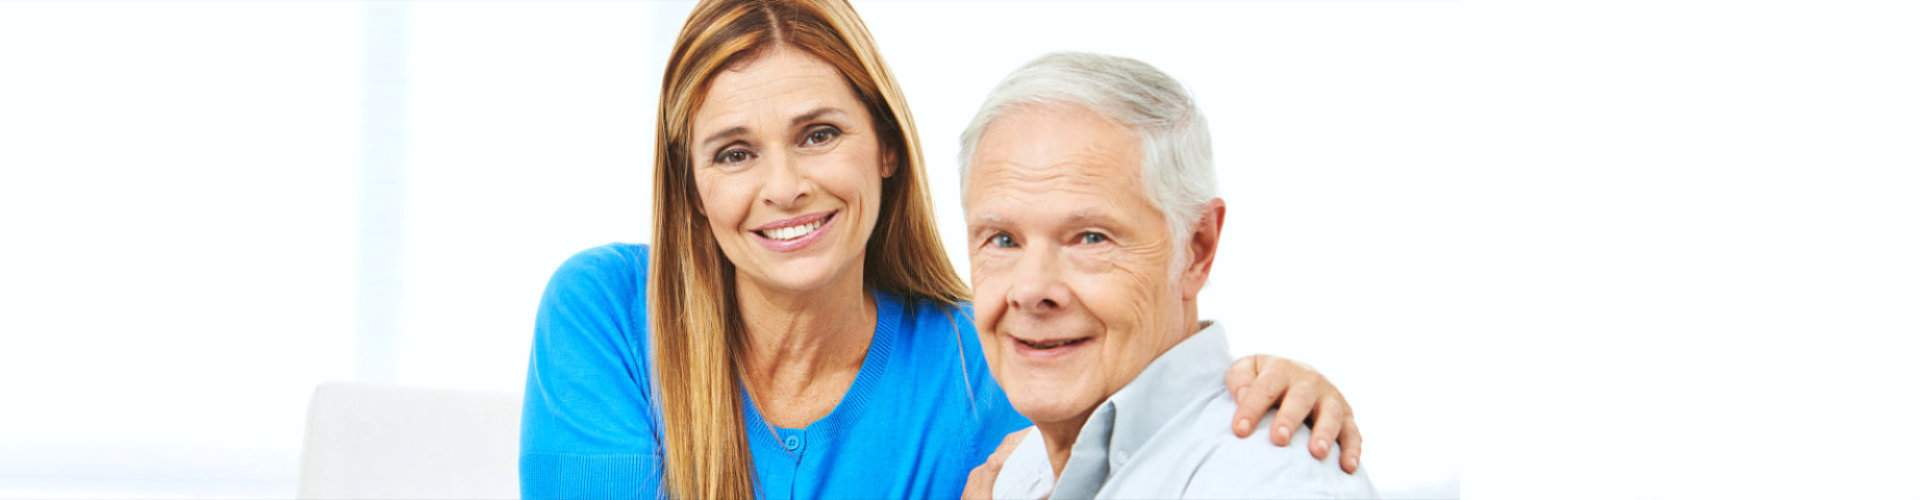 lady caregiver and old man smiling